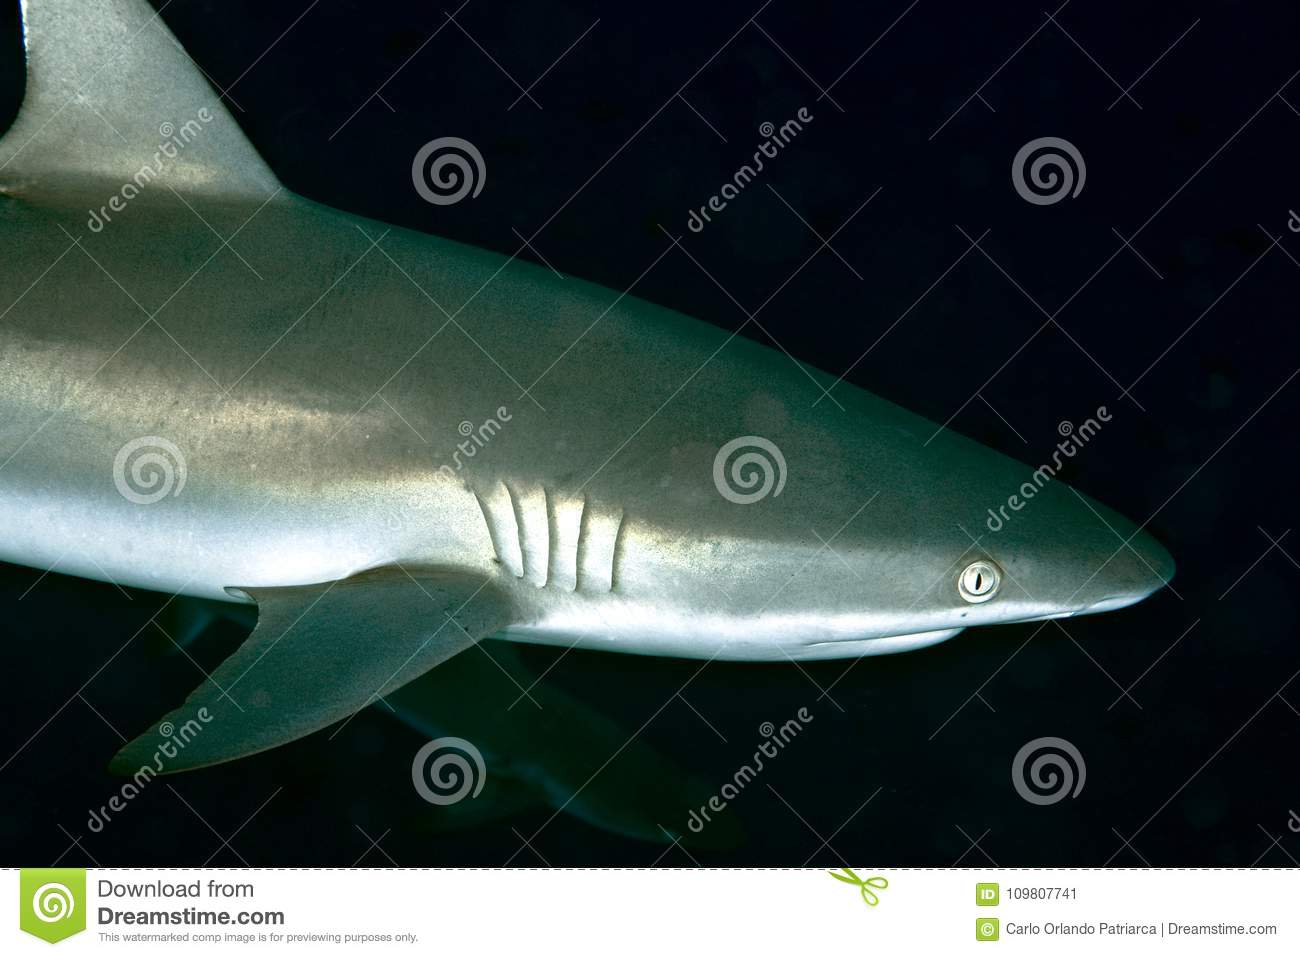 Grey Reef Shark Carcharhinus amblyrhynchos close-up portrait